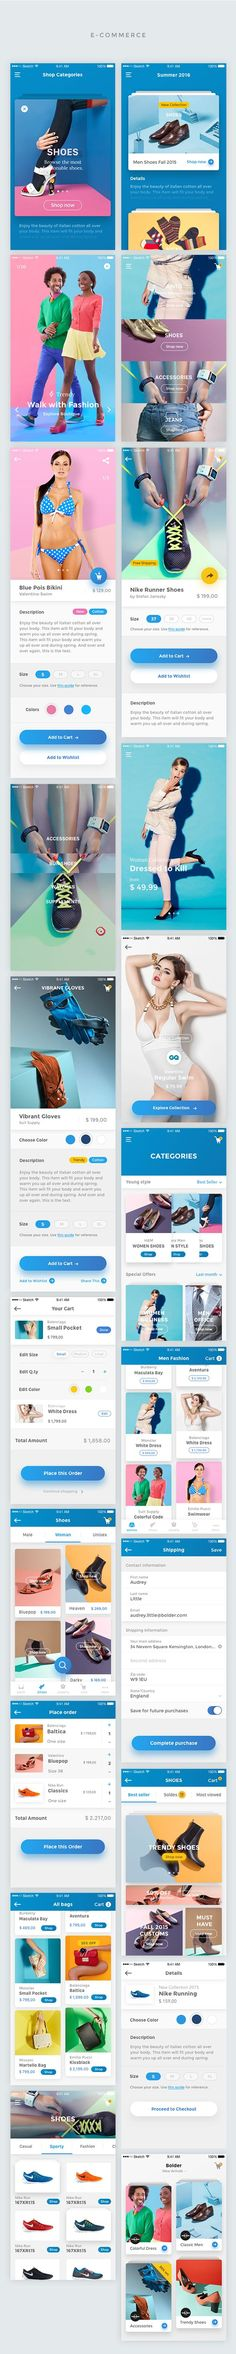 Bolder - Multipurpose Mobile UI KIT for Sketch - Sketch Templates. If you like…